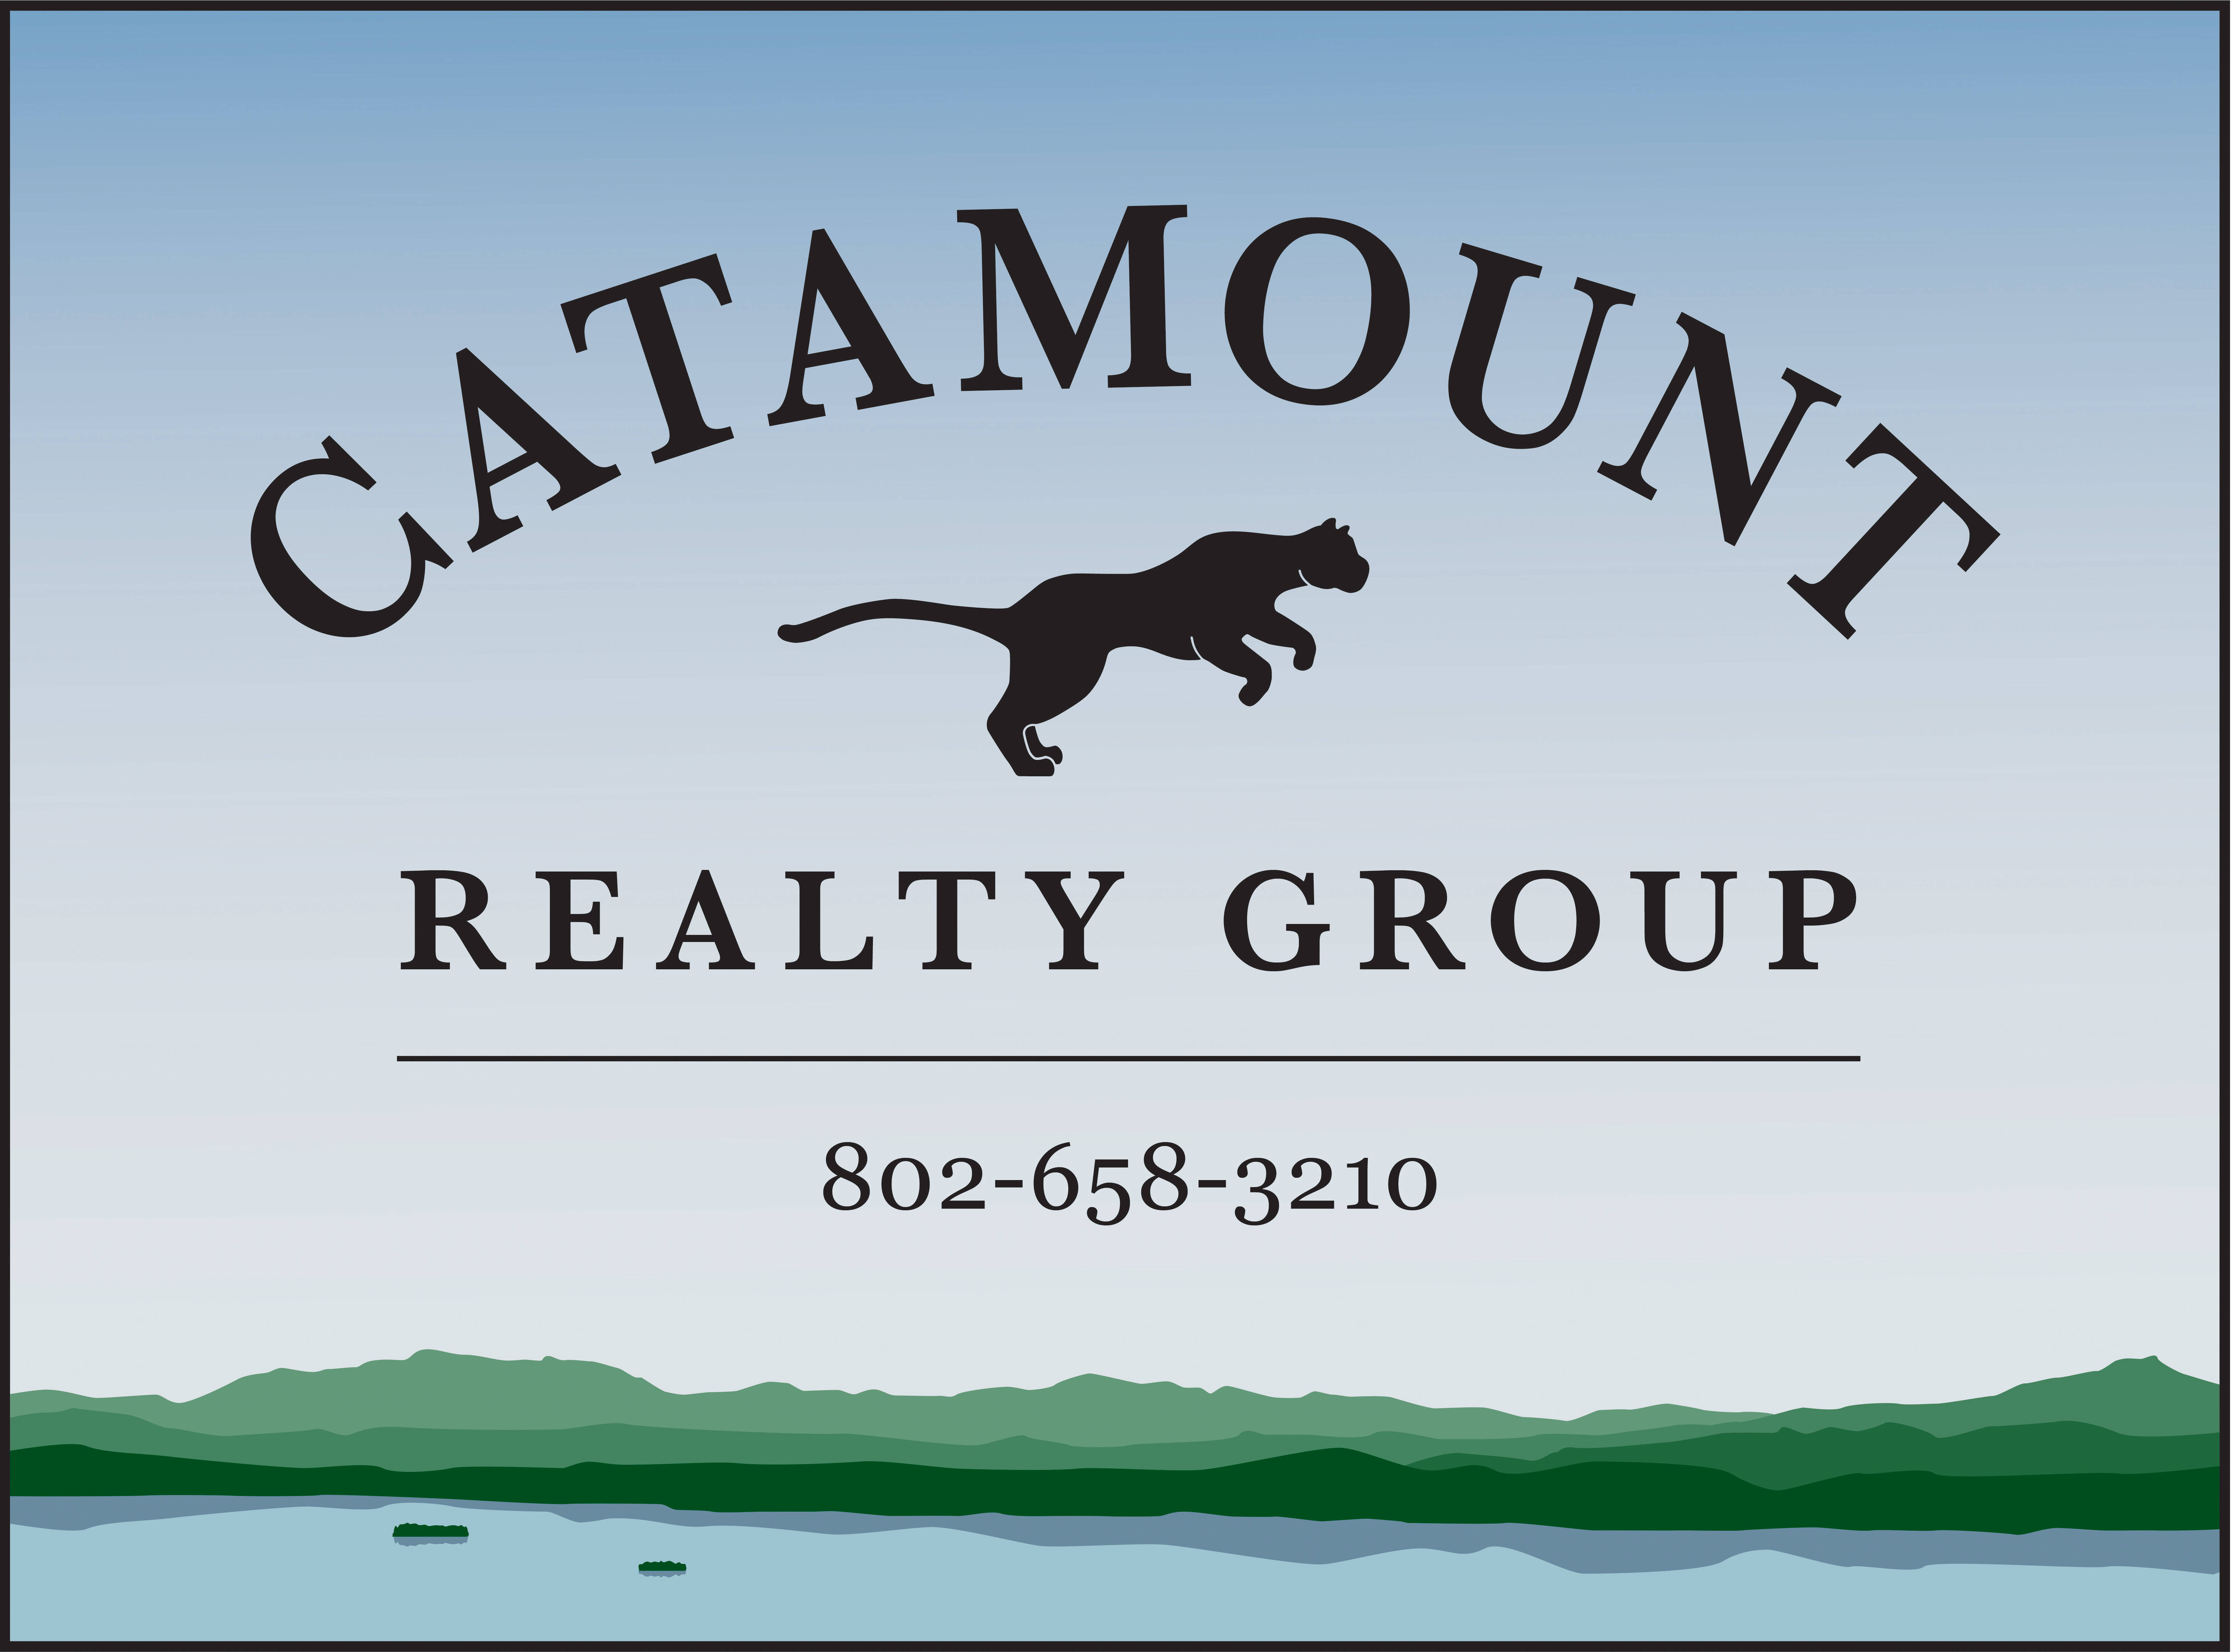 Catamount Realty Group